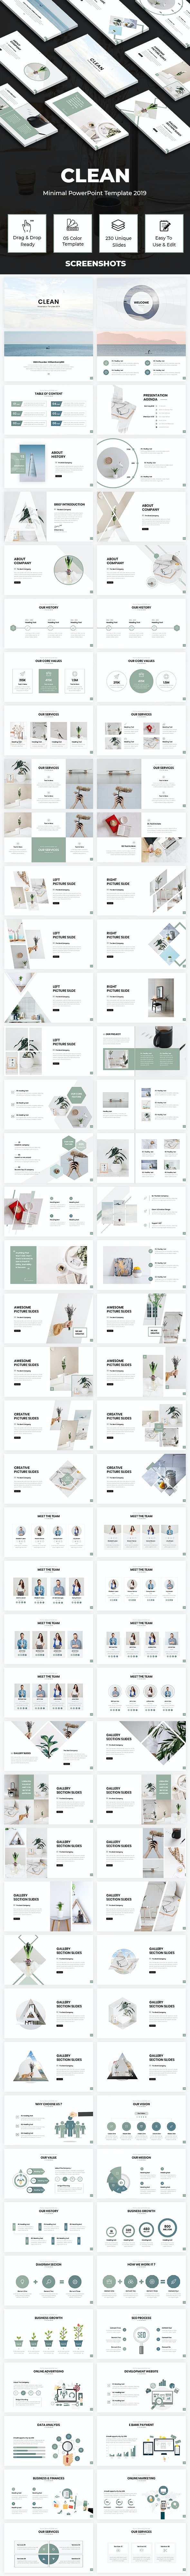 Clean - Minimal PowerPoint Template 2019 - PowerPoint Templates Presentation Templates